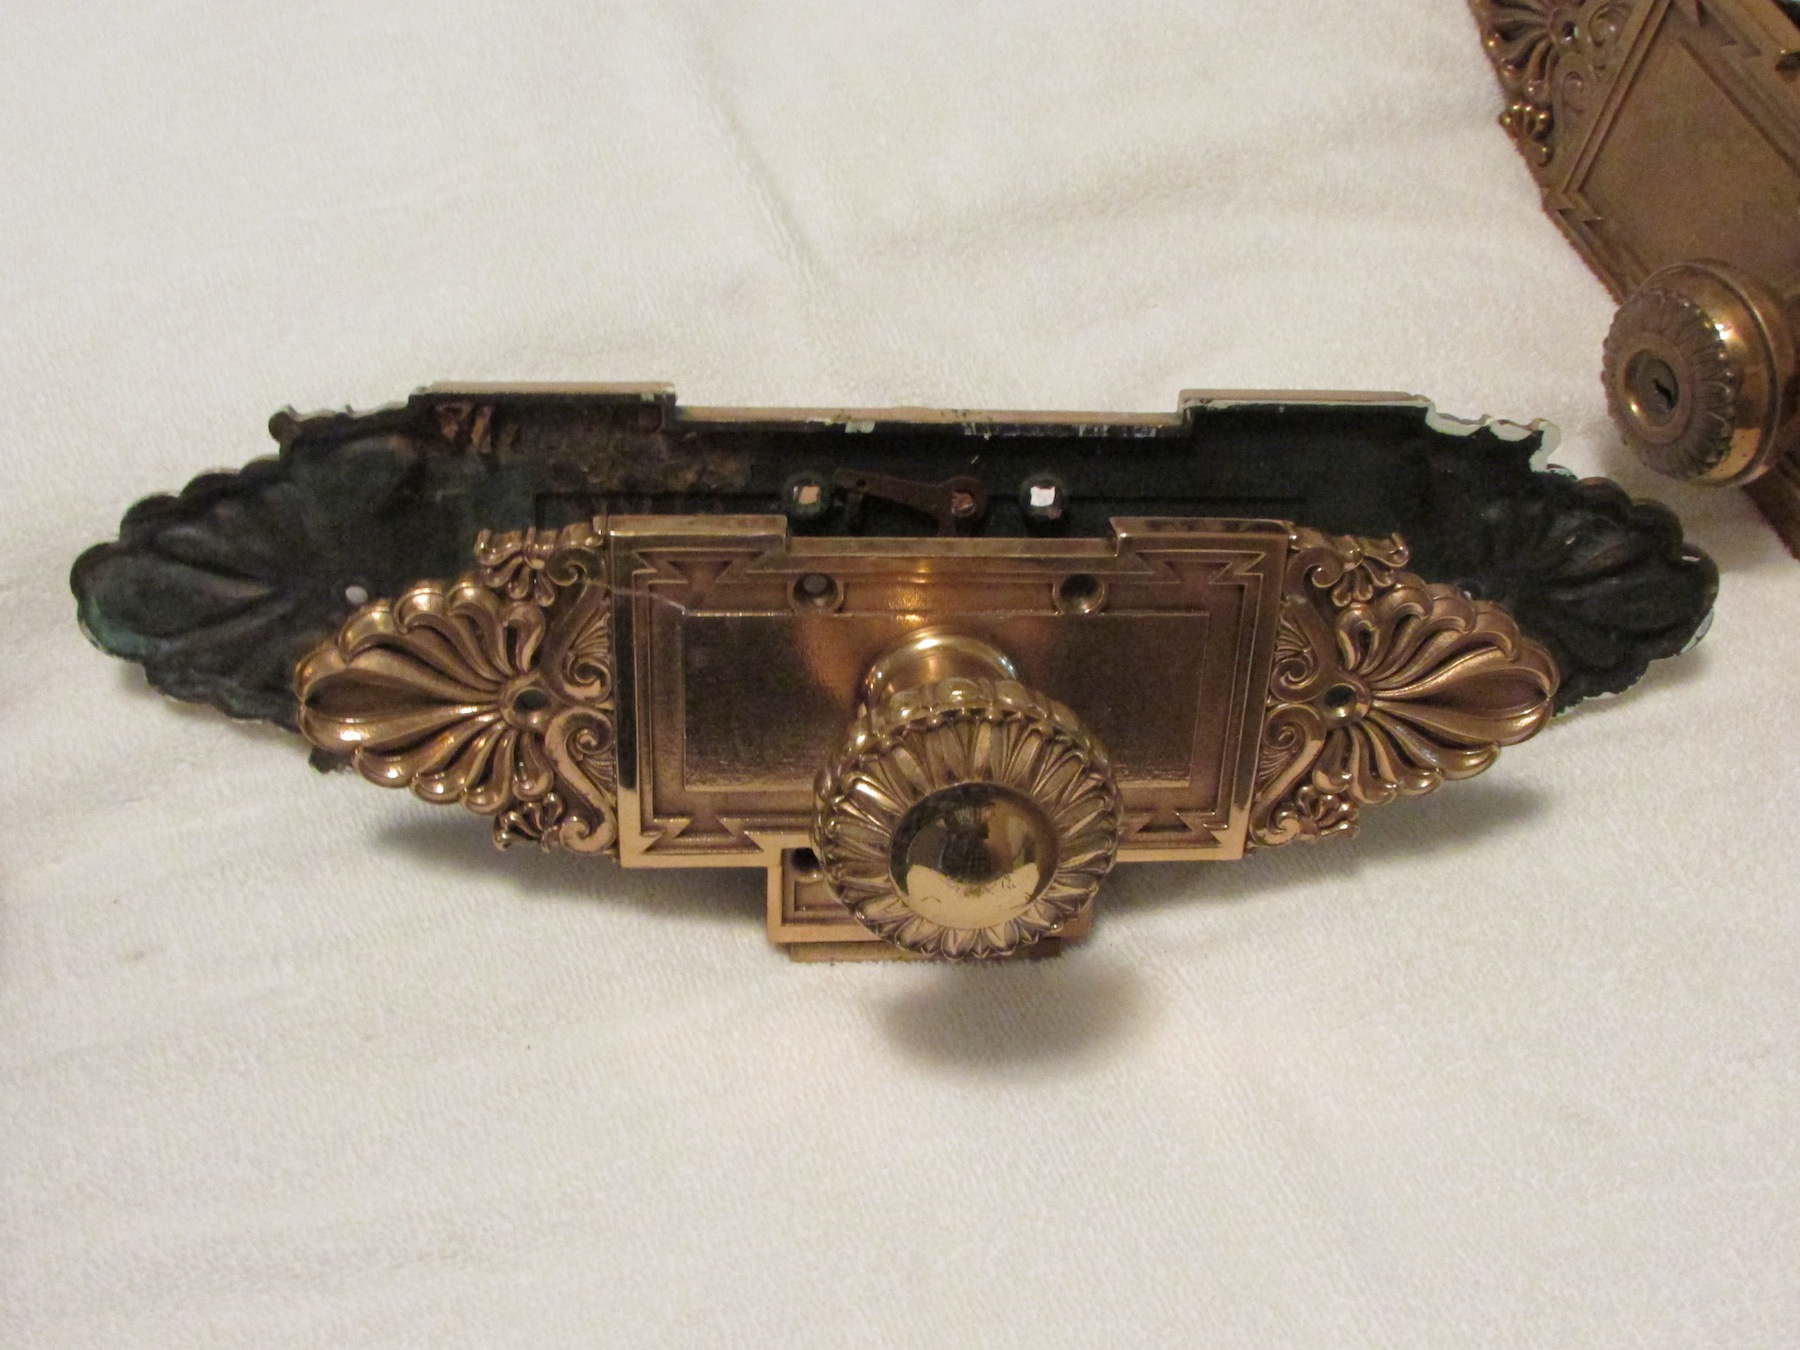 historic door knobs and plates antique appraisal   InstAppraisal